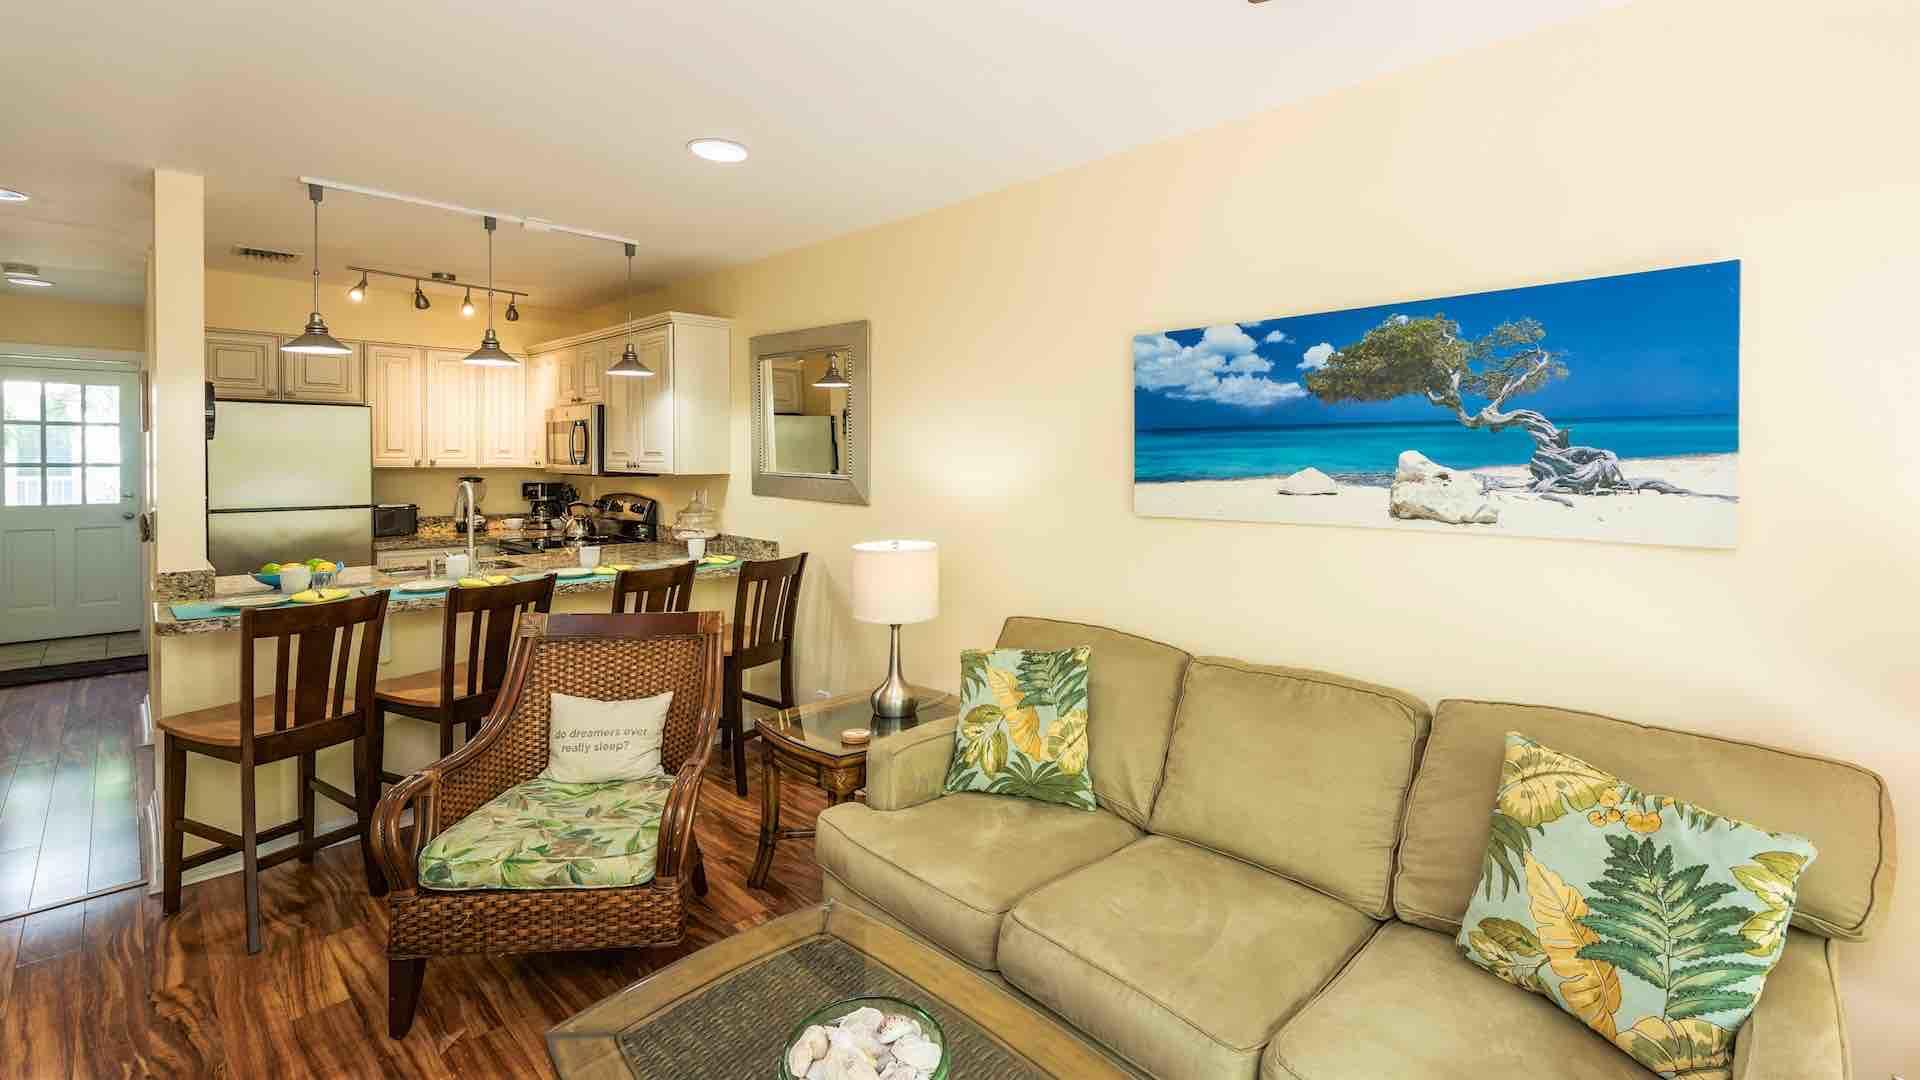 The living room and kitchen are open, making the condo ideal for entertaining...